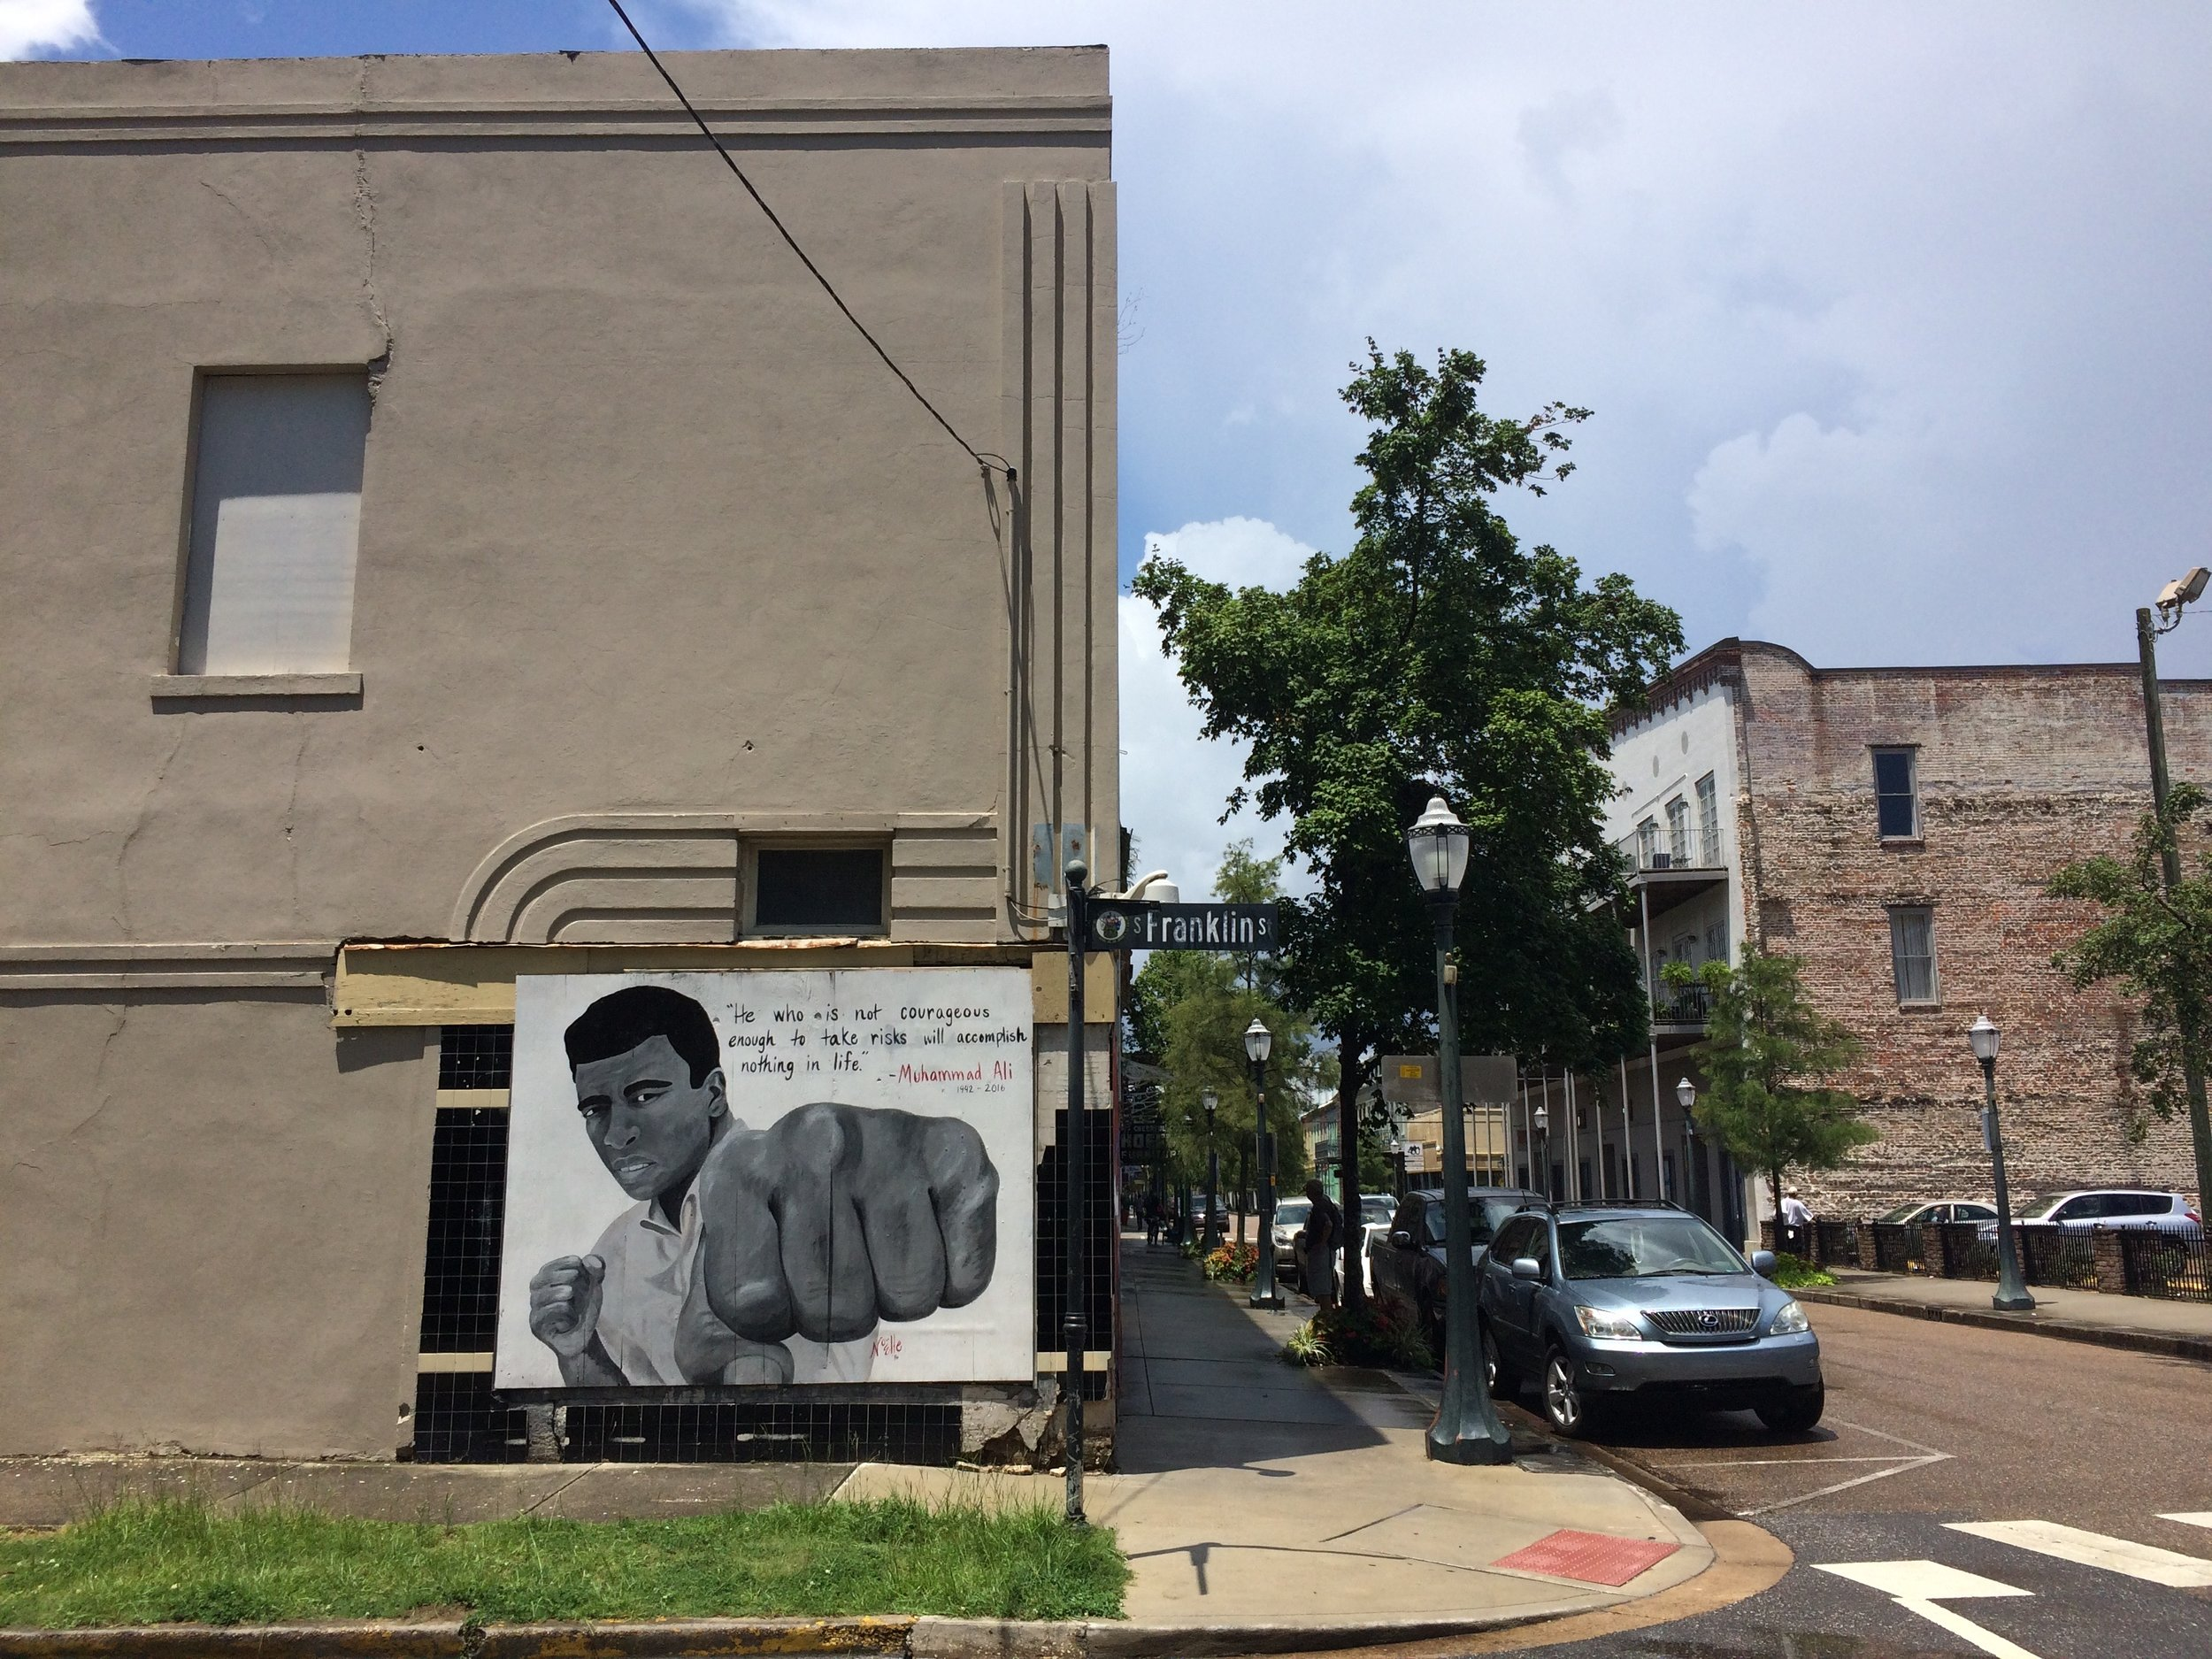 Downtown Mobile streetscape features several murals.